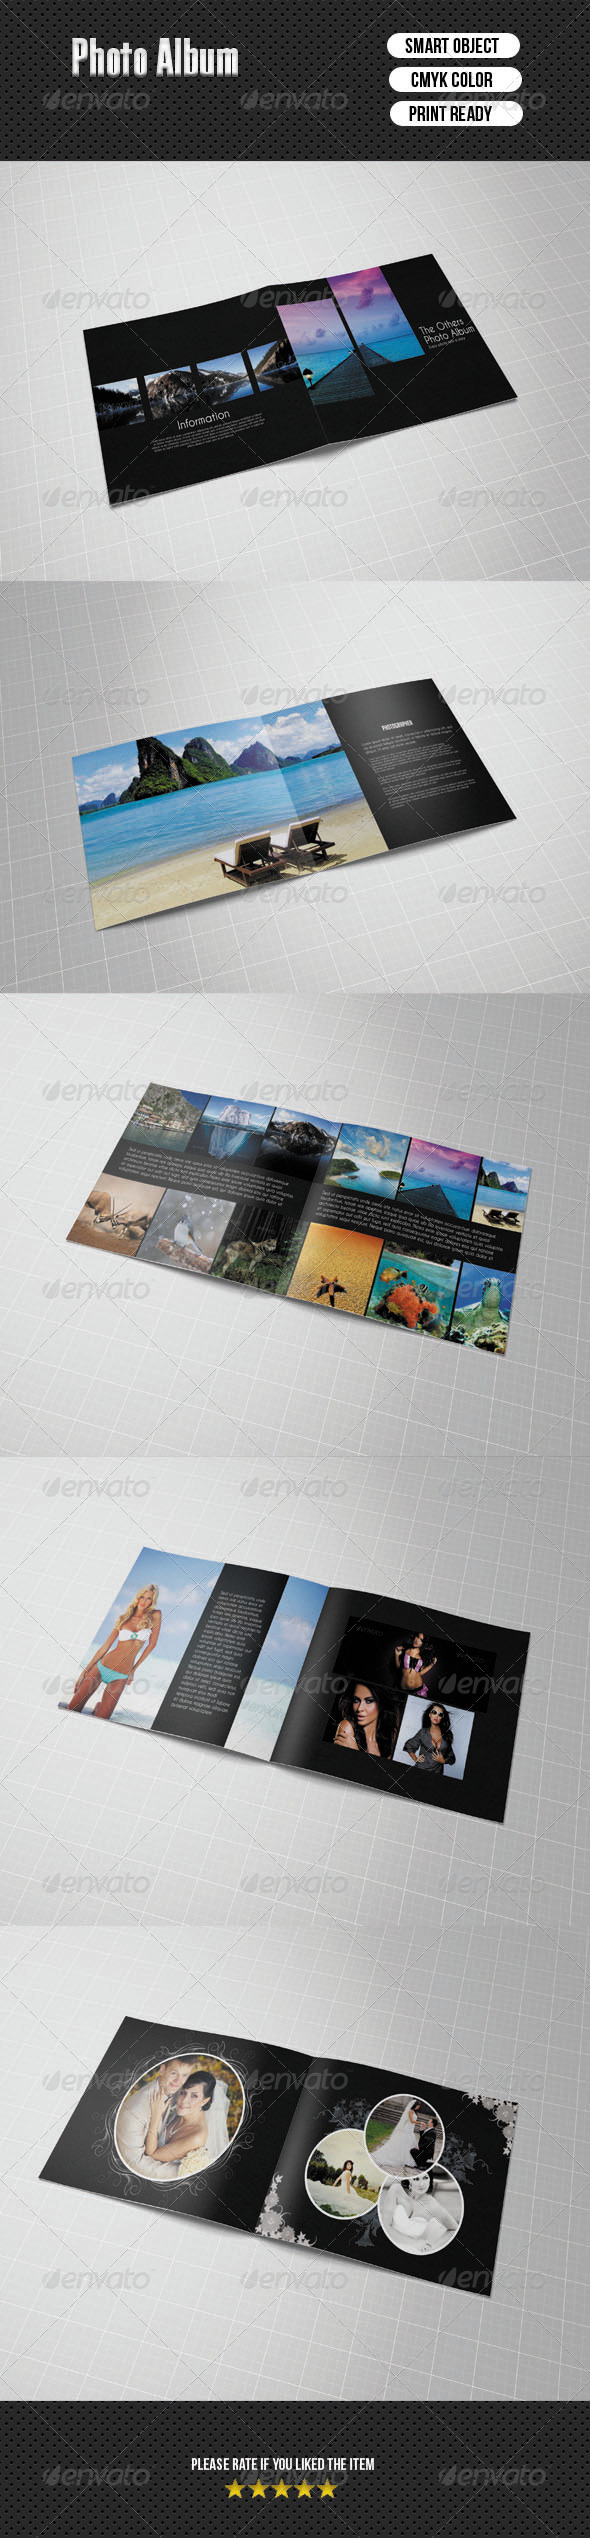 GraphicRiver Photo Album 6786592